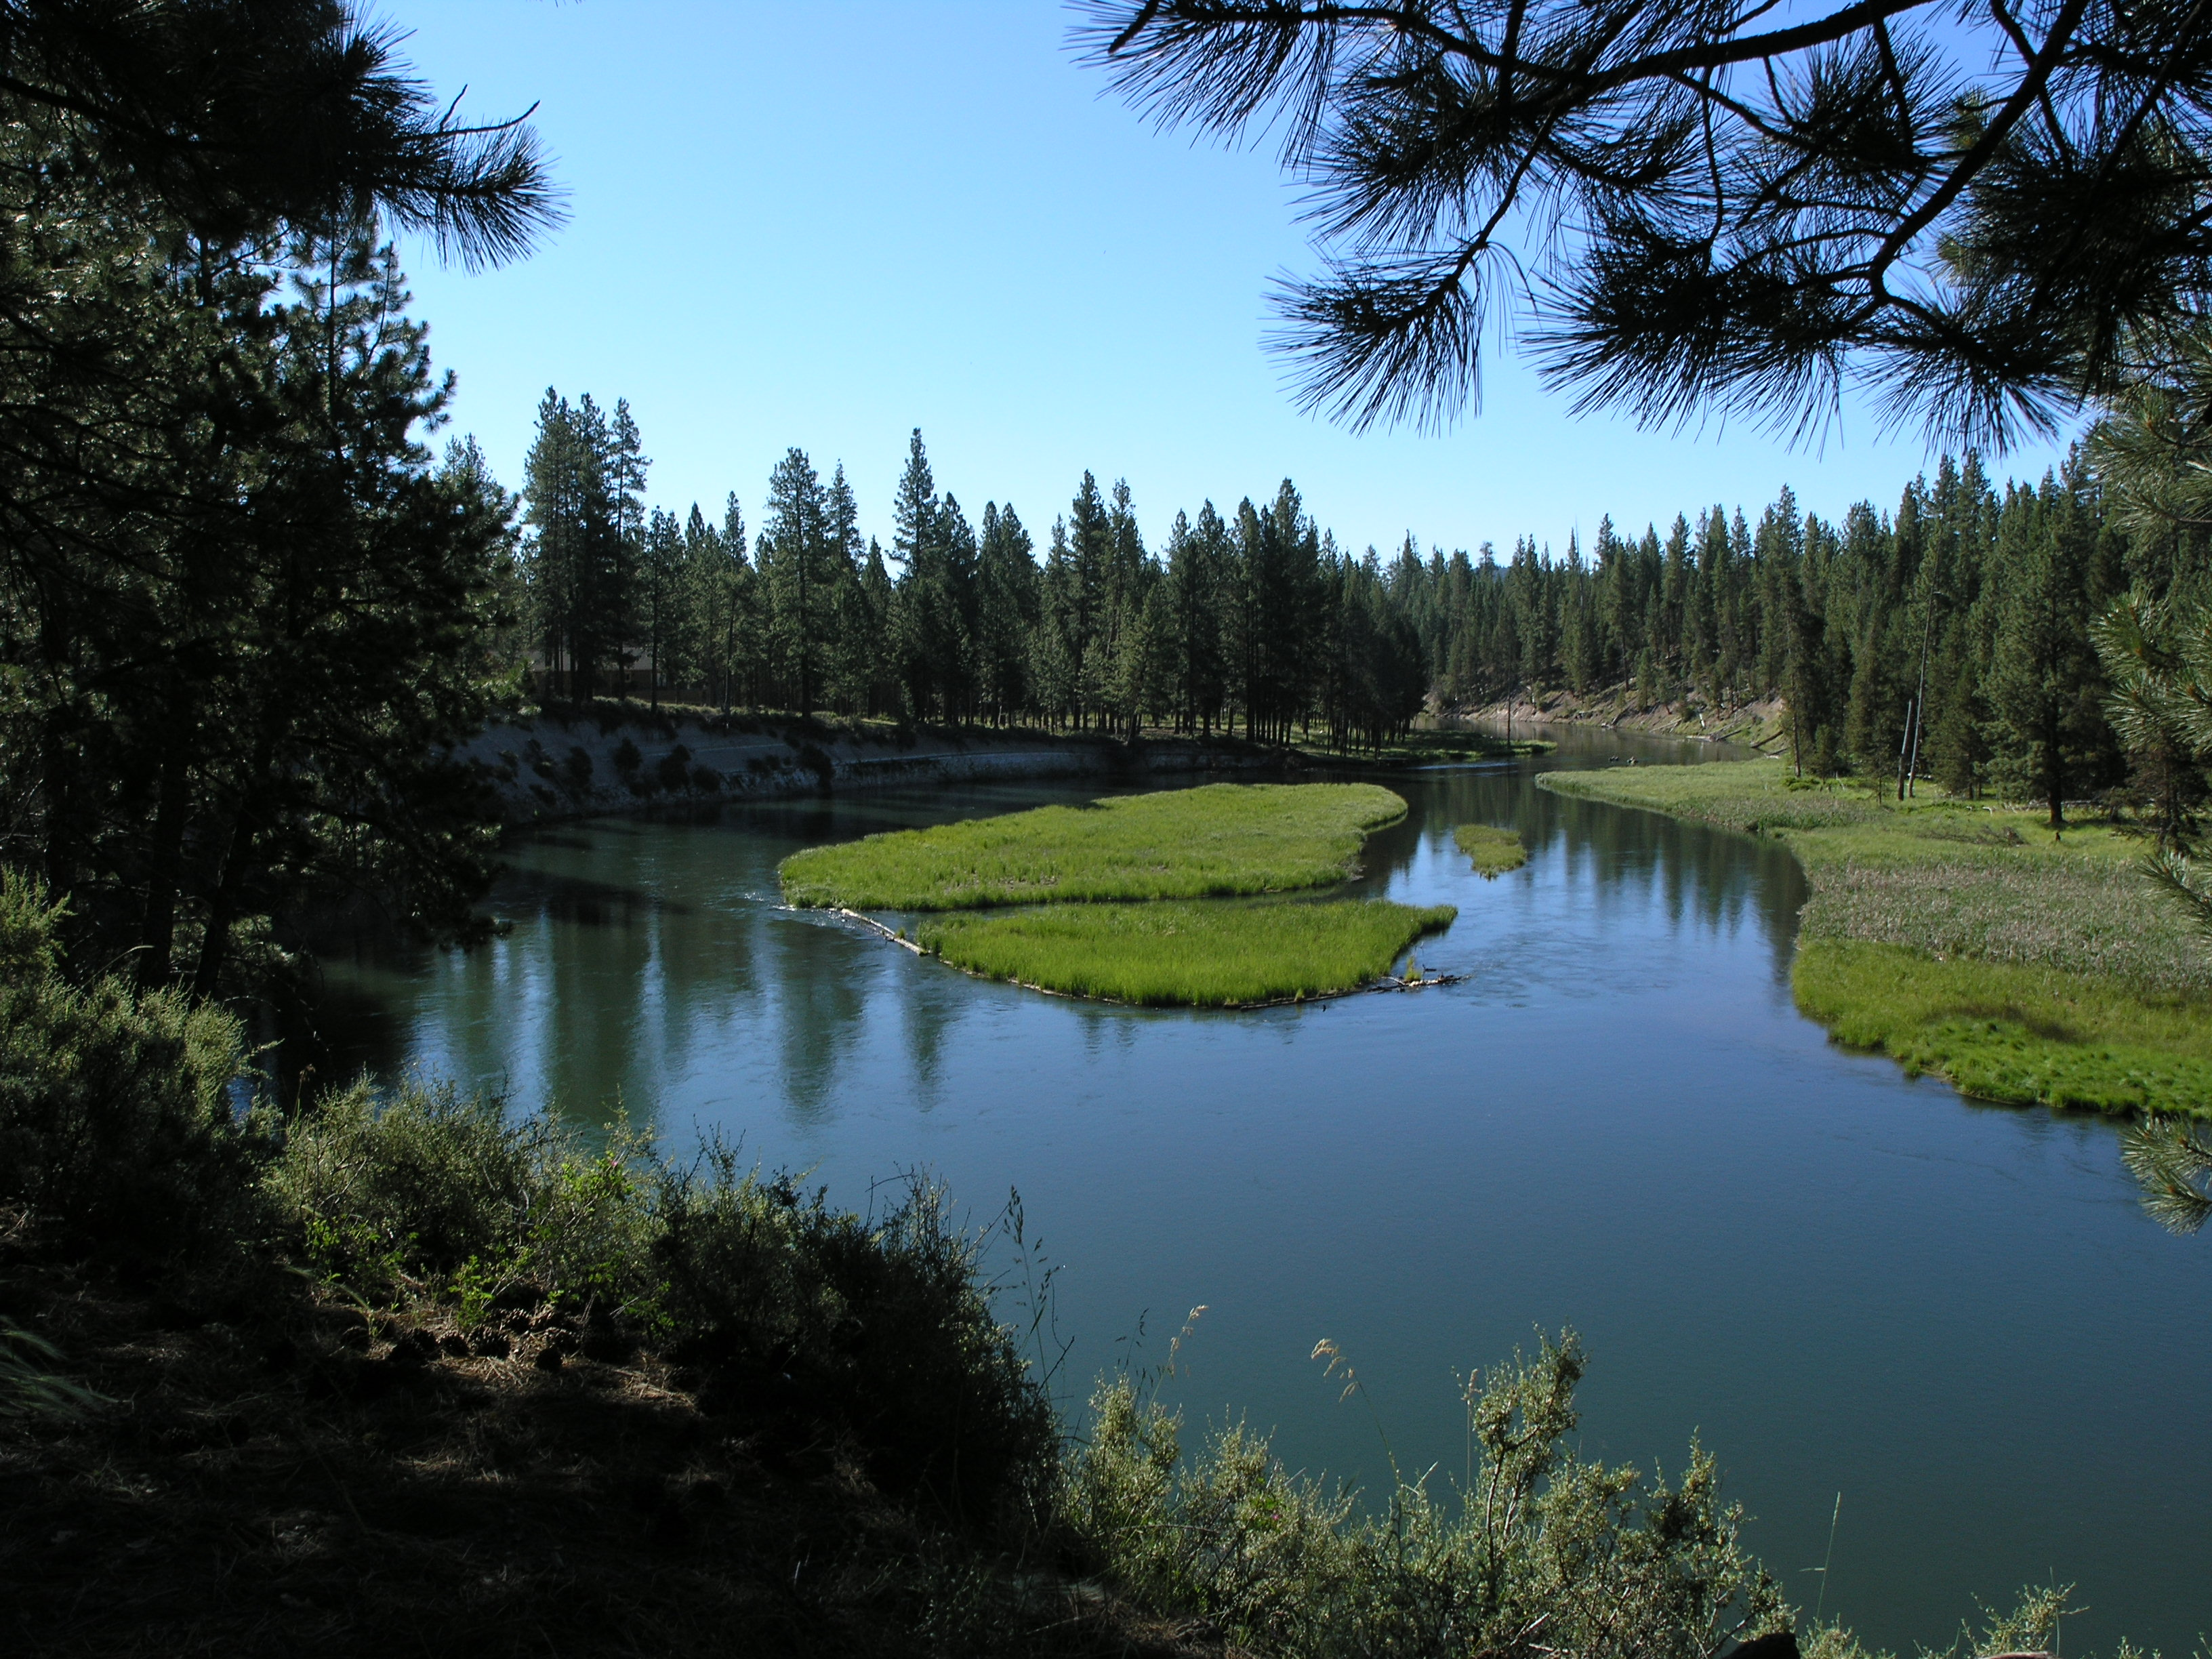 Tetherow to Big Deschutes River